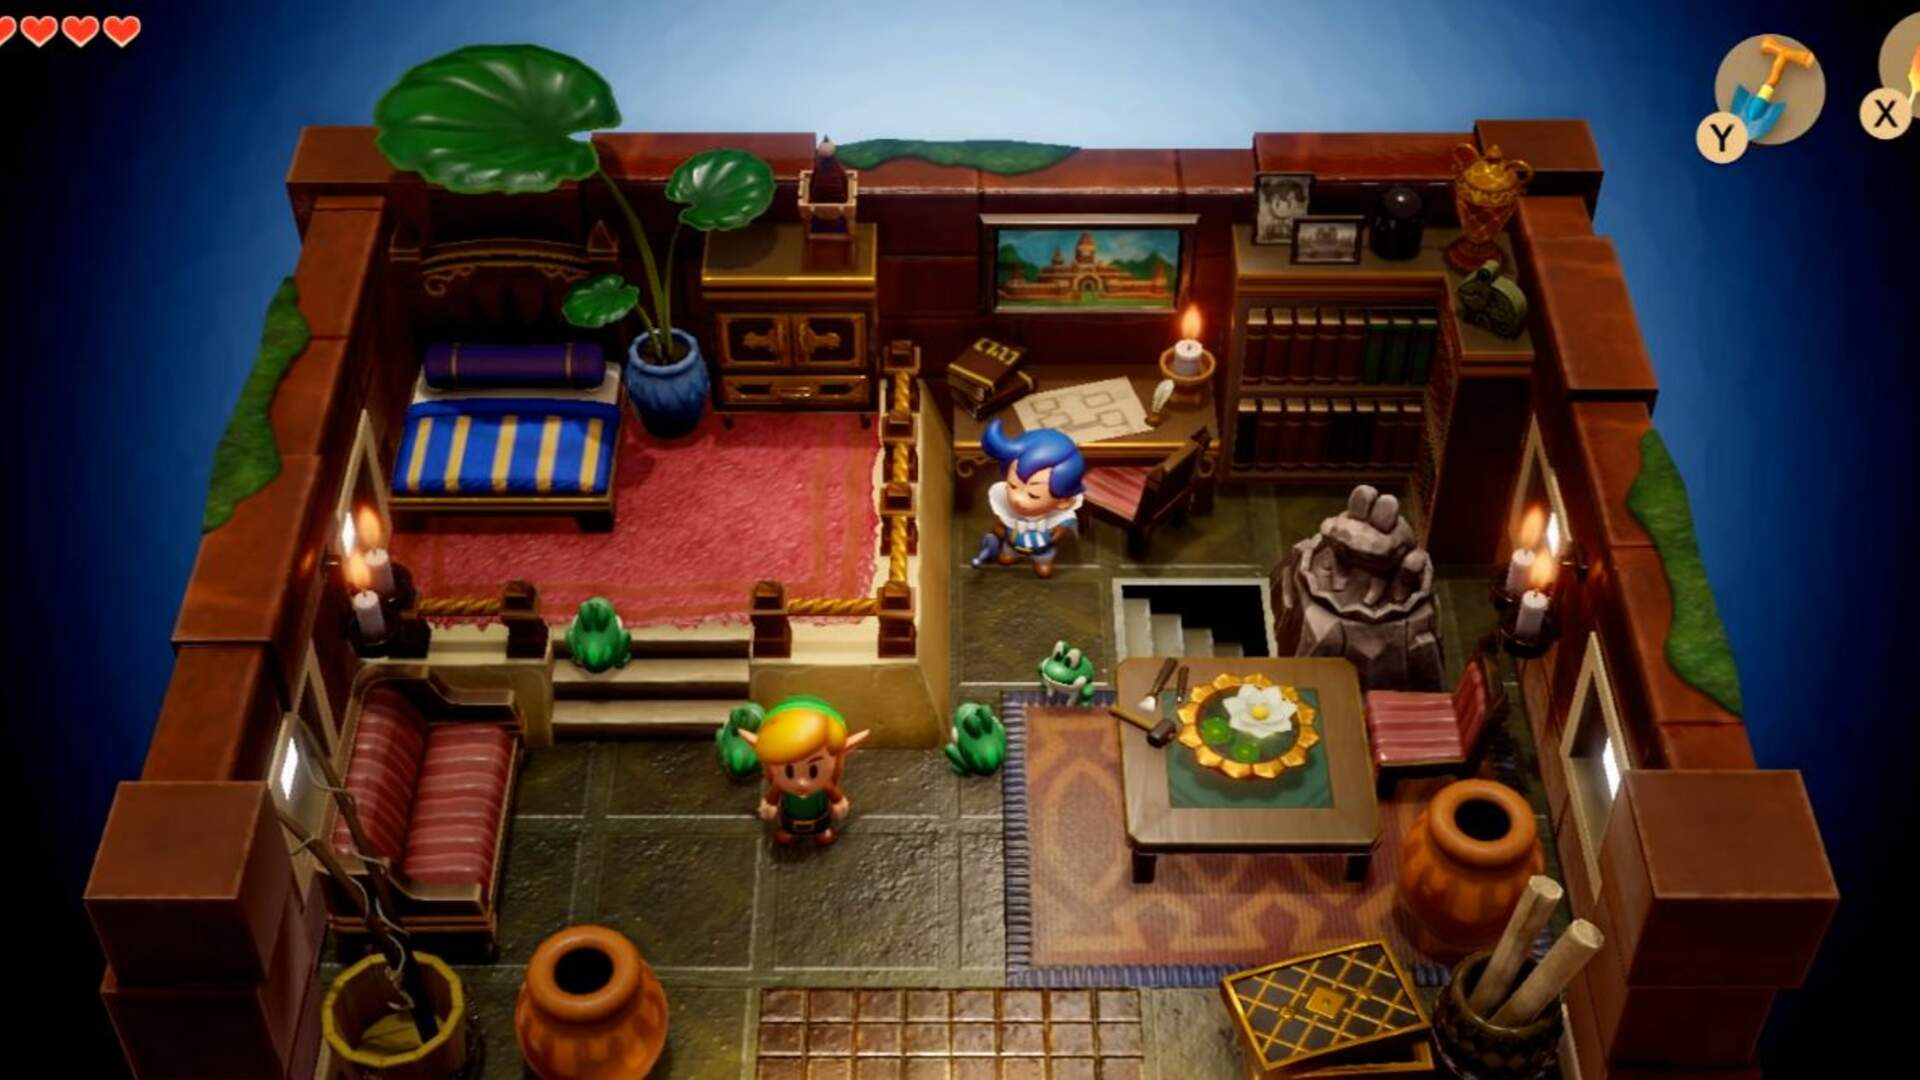 The Legend of Zelda: Link's Awakening is Hiding Totaka's Song and Other Musical Easter Eggs